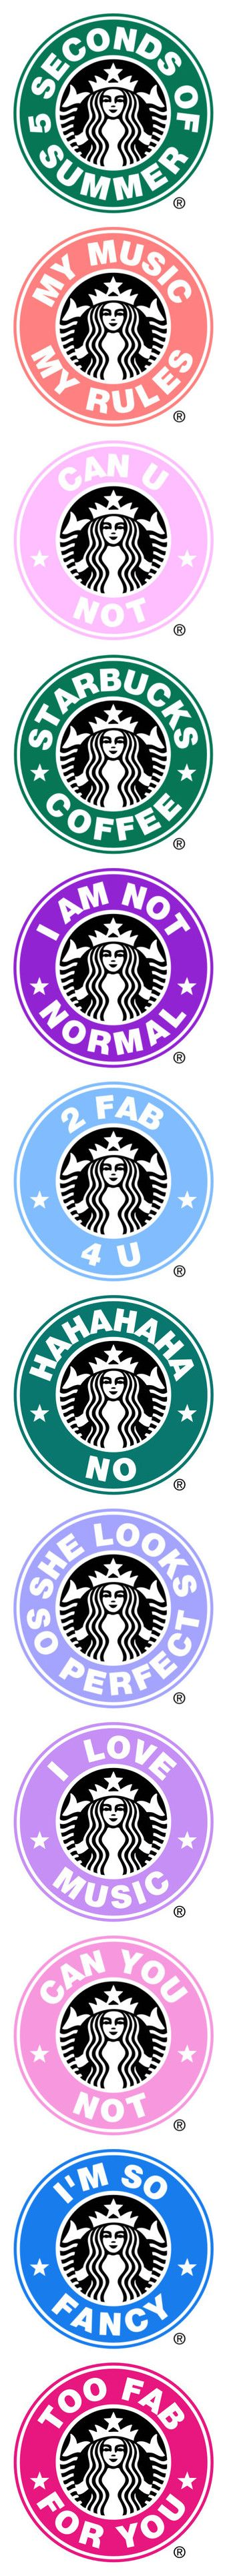 """""""Starbucks Logos"""" by enchantedbrunette ❤ liked on Polyvore featuring starbucks, logos, starbuckslogos, 5sos, fillers, starbucks logo, 5 seconds of summer, backgrounds, circle and circular"""